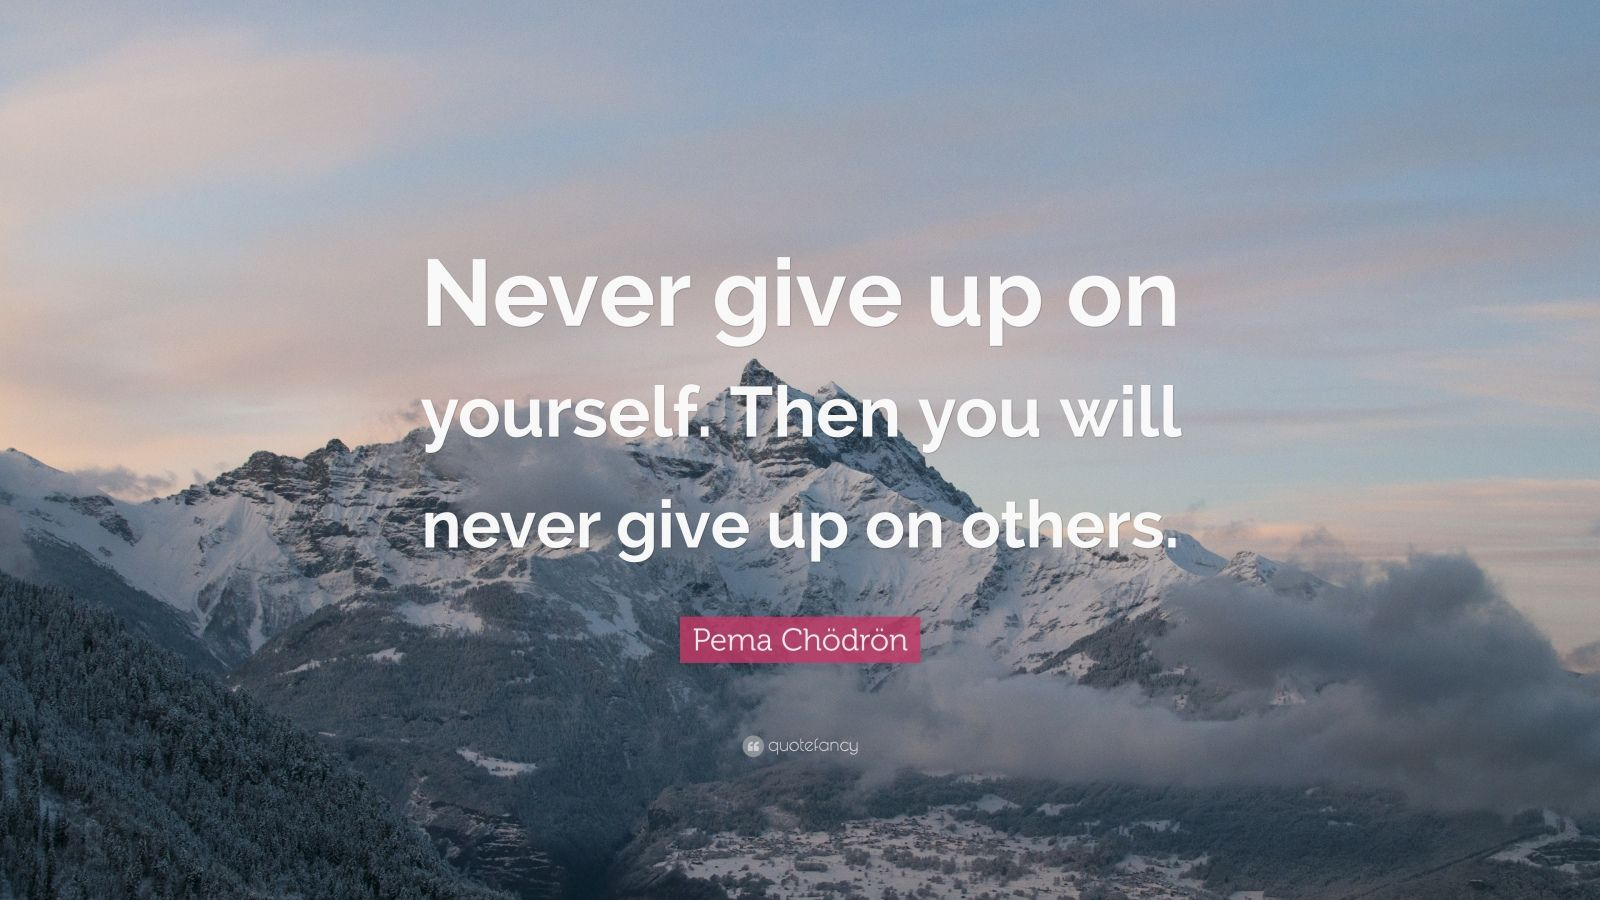 """Pema Chödrön Quote: """"Never give up on yourself. Then you will never give up on others."""""""